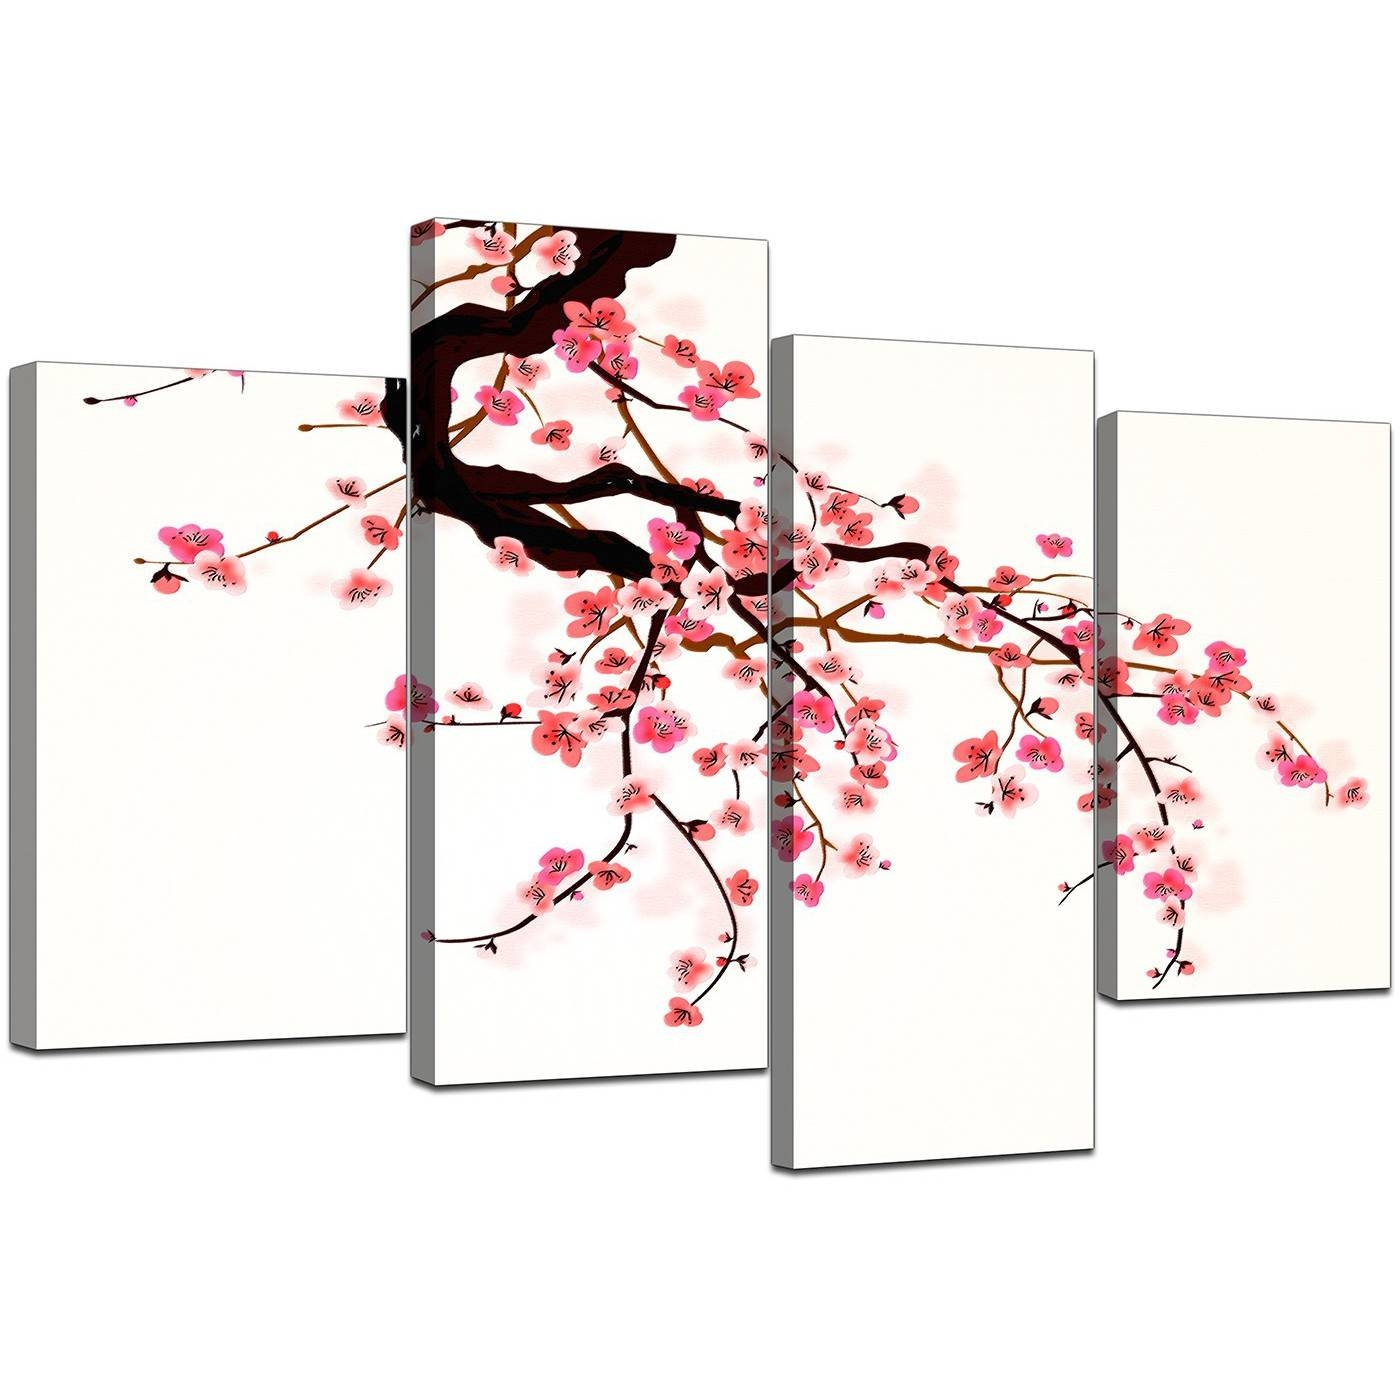 Canvas Prints Uk Of Cherry Blossom For Your Living Room – Set Of 4 Inside 2017 Red Cherry Blossom Wall Art (View 13 of 30)